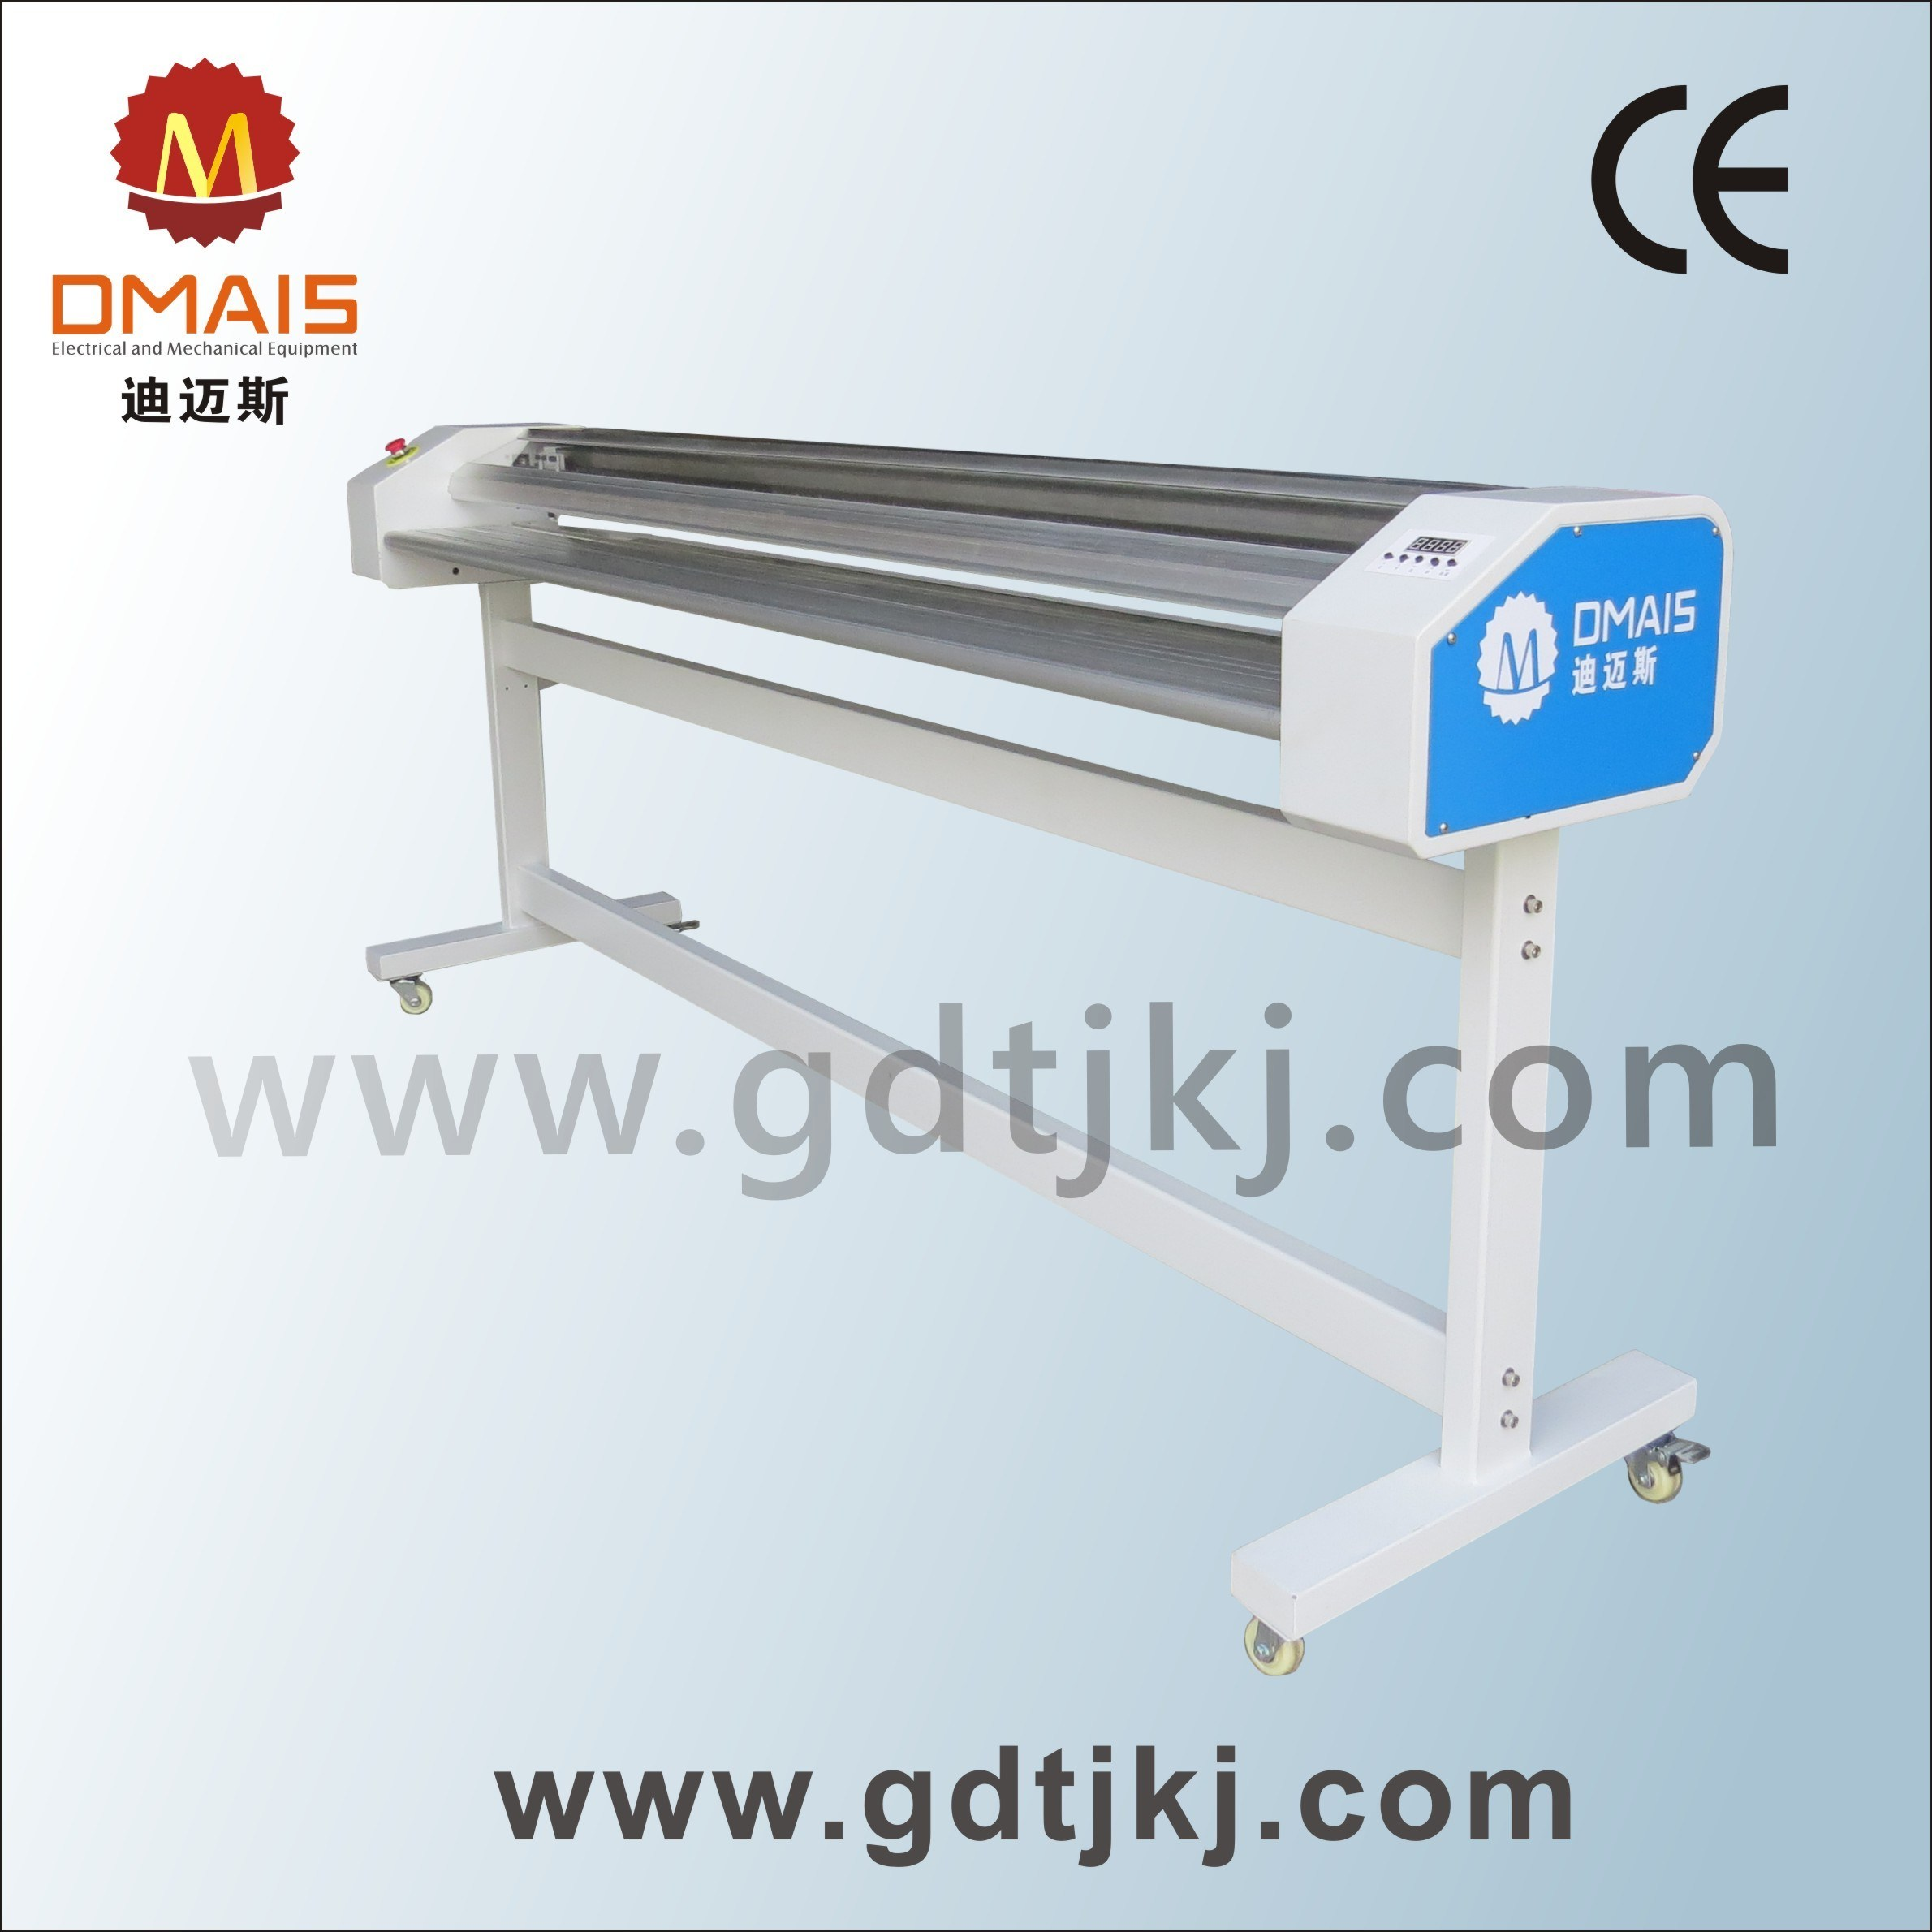 Qz-1800 Paper Cutter for Advertising Material Left and Right Side